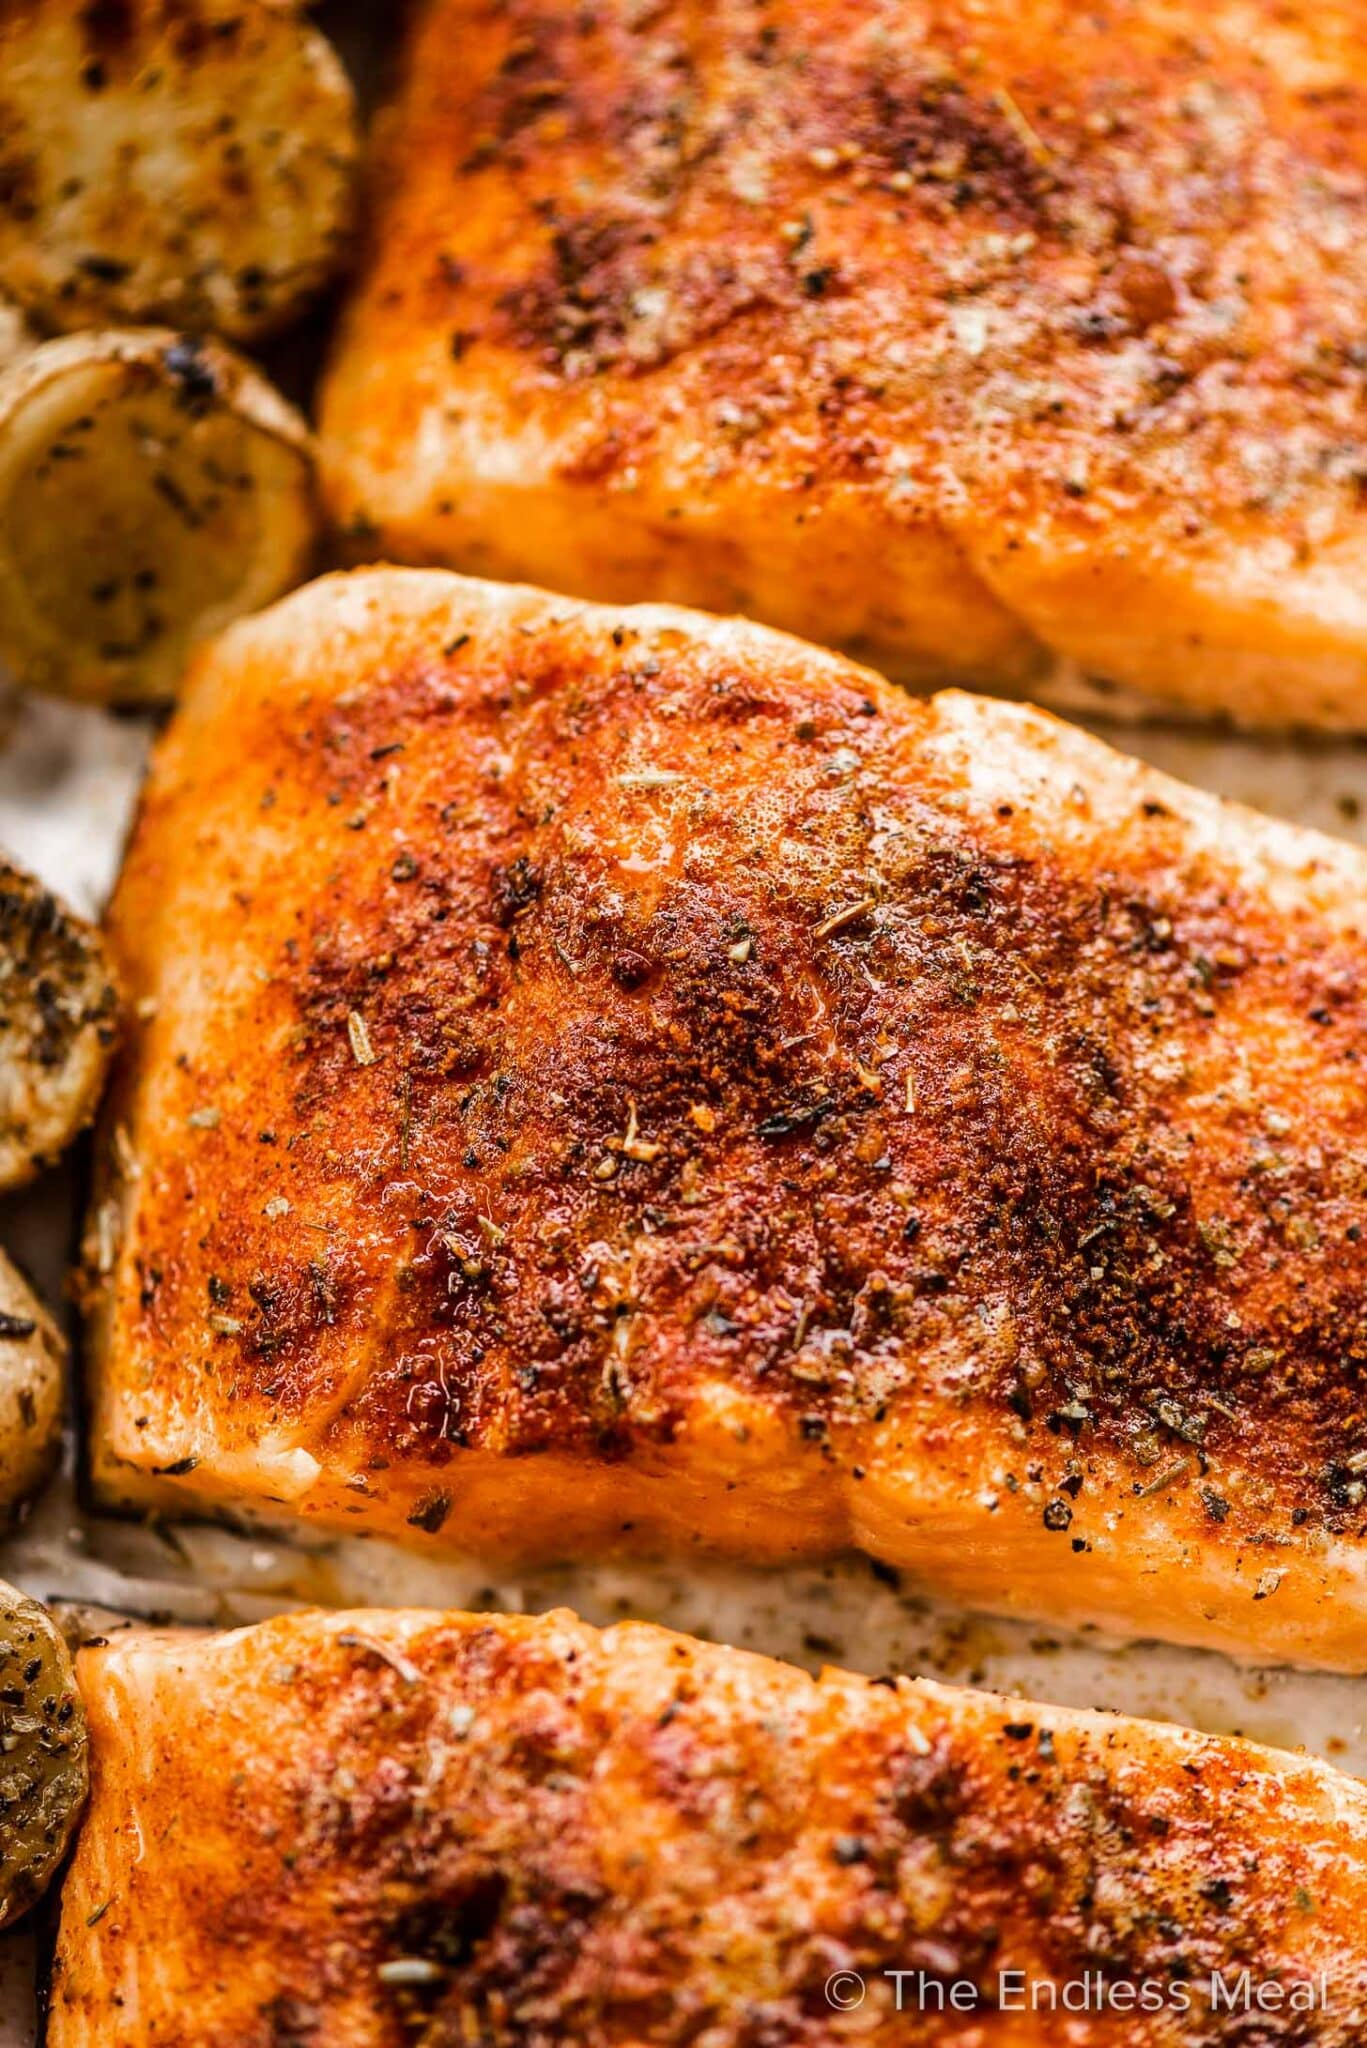 A close up of tender cooked salmon on a baking sheet.